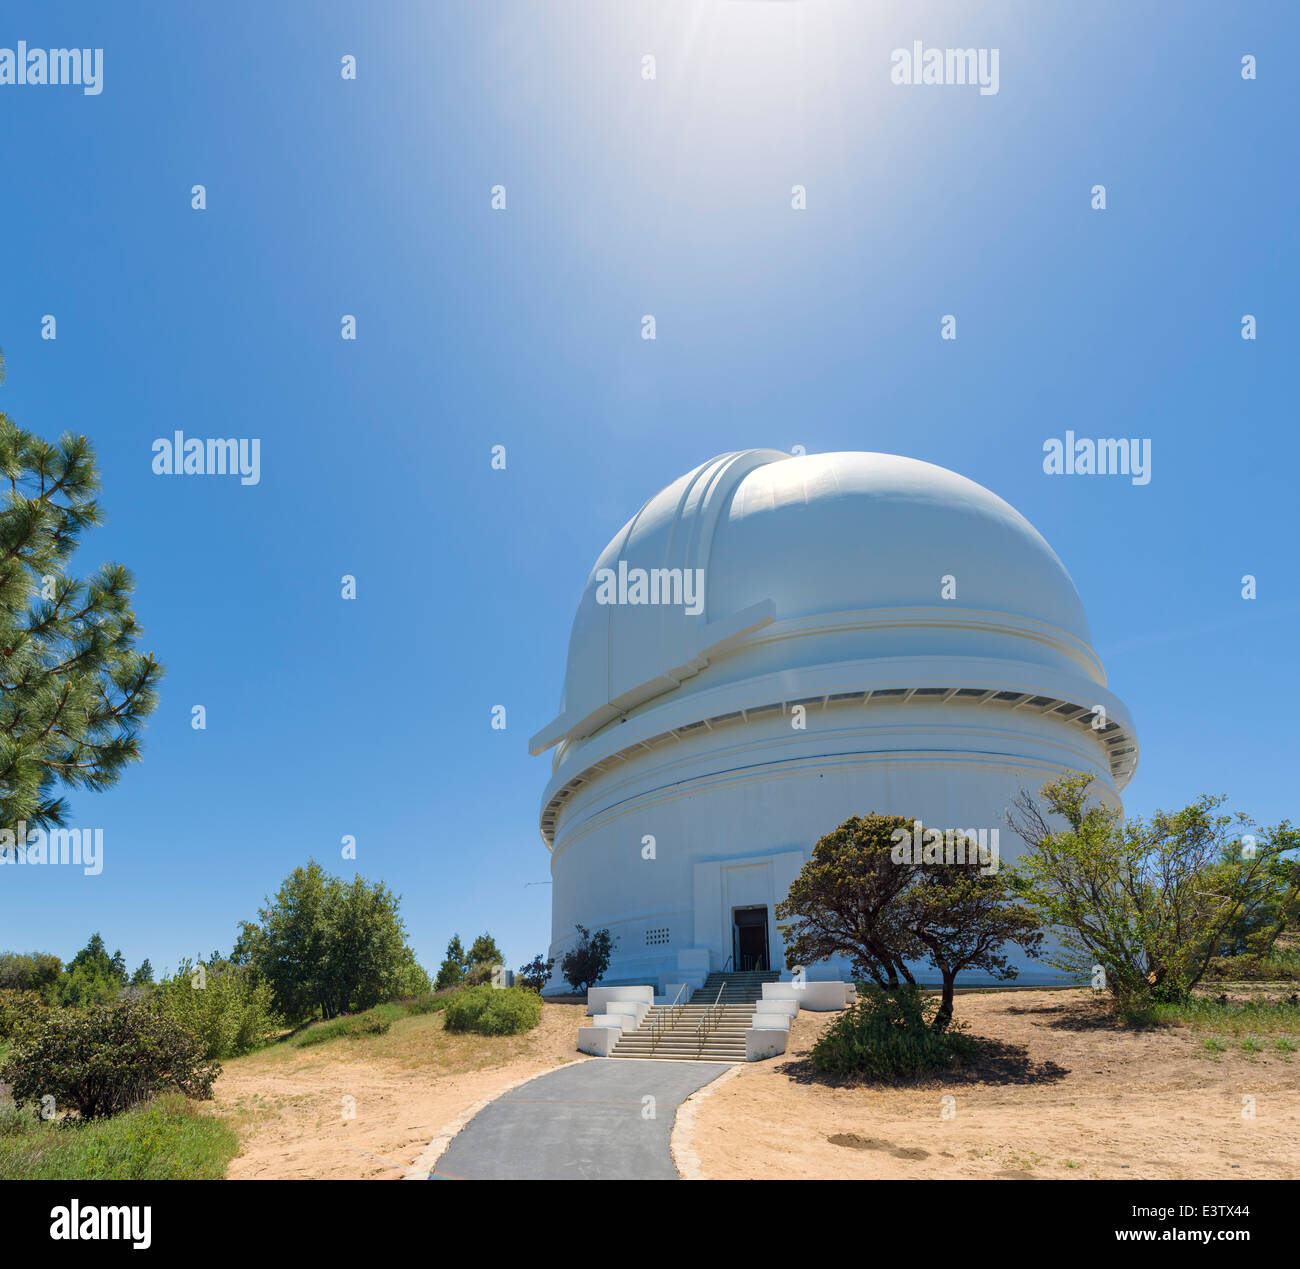 The dome of the 200 inch Hale Telescope at the Palomar Observatory, San Diego County, California, USA - Stock Image